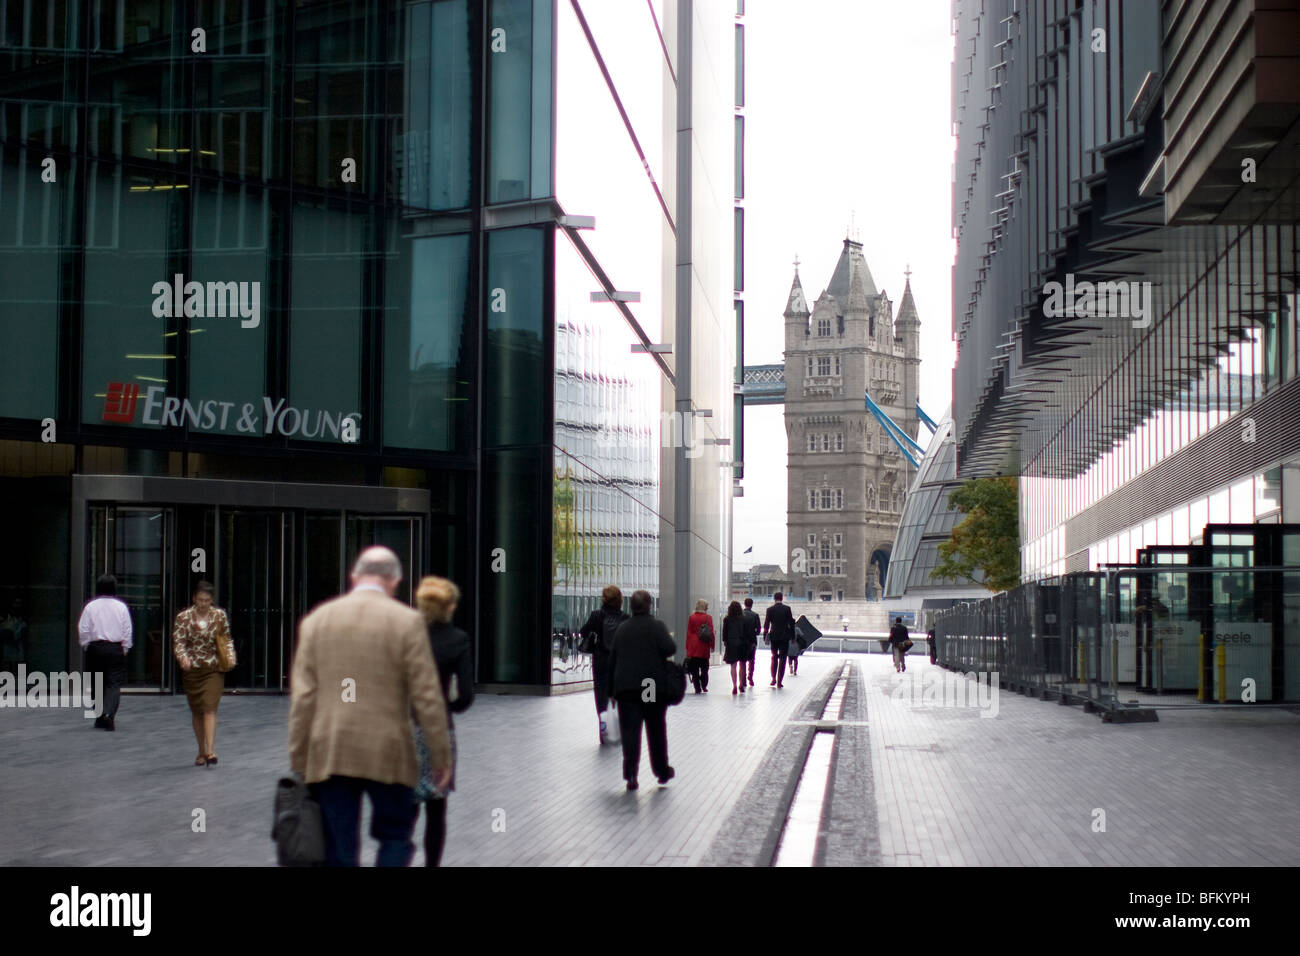 ernst young stock photos ernst young stock images alamy ernst and young more london place tower bridge in background stock image